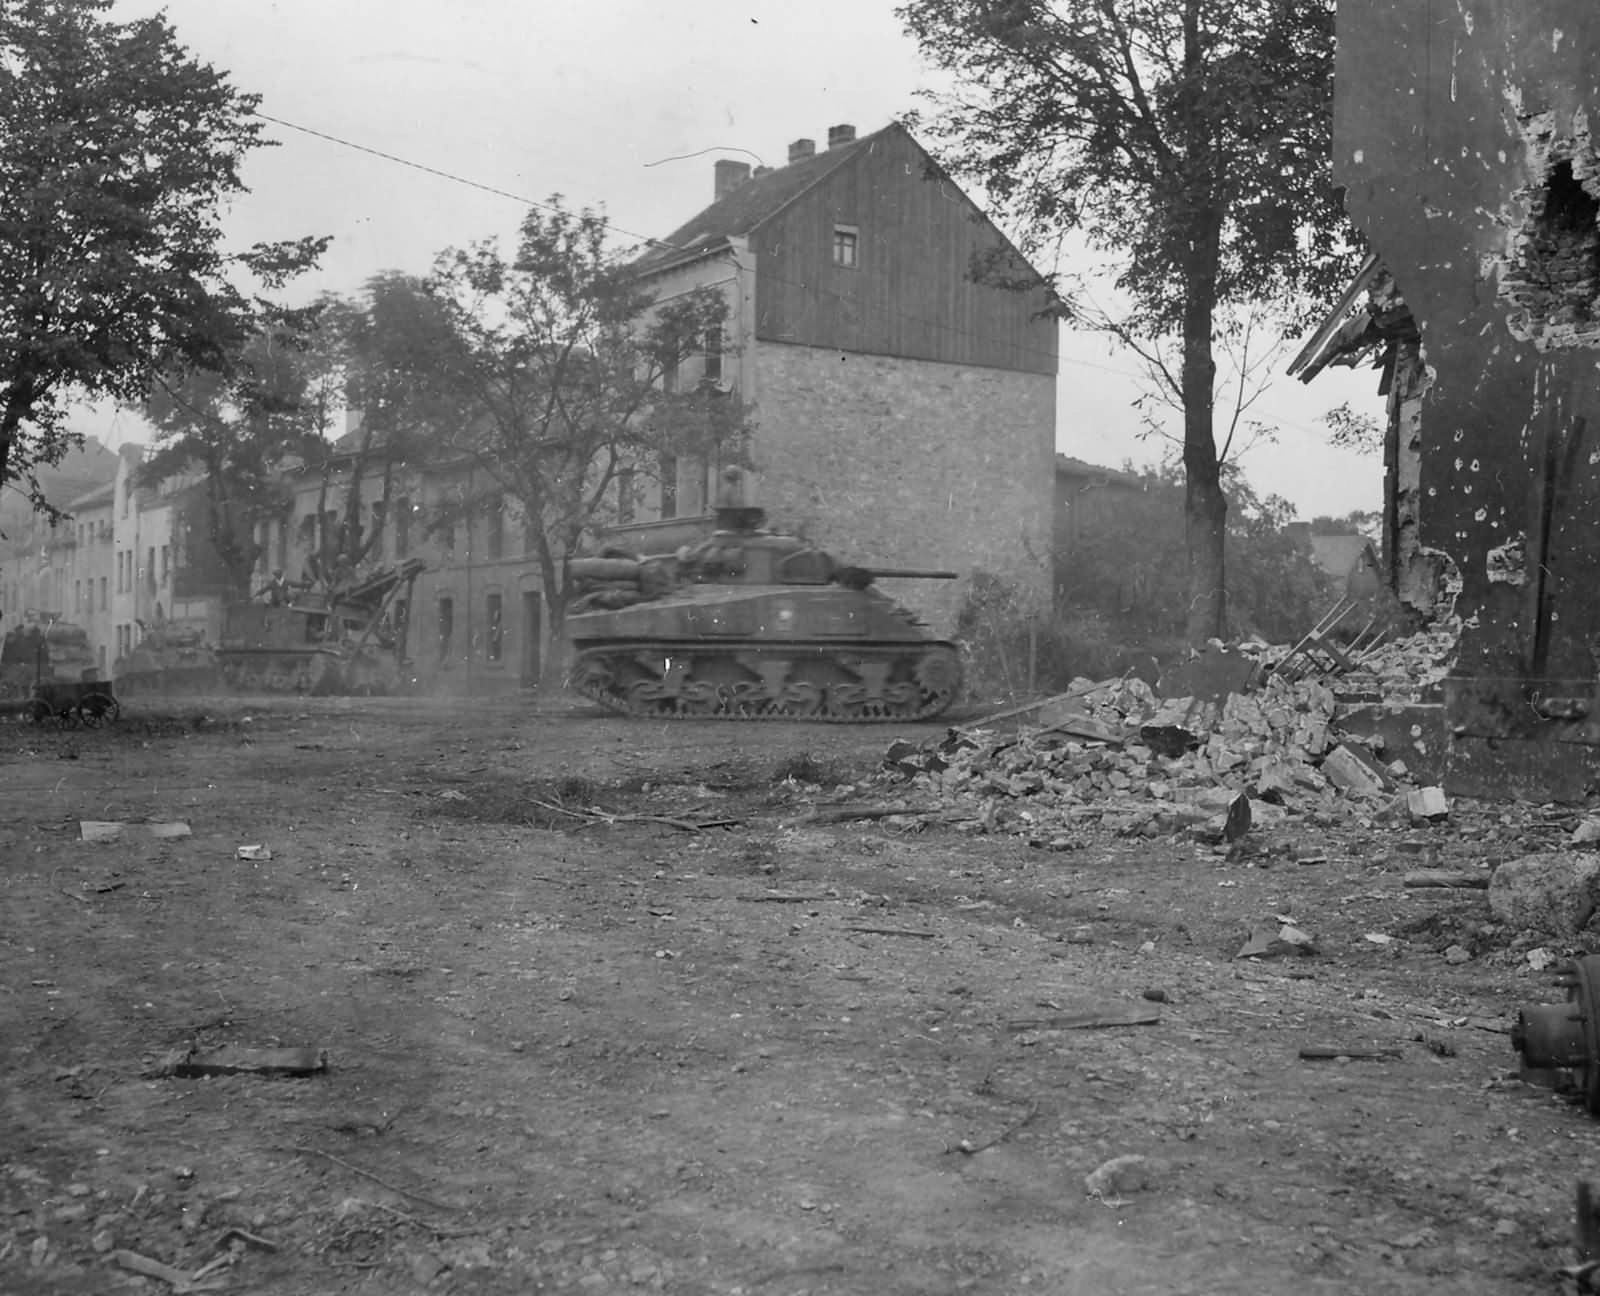 3rd_Armored_Division_M4_Sherman_and_T2_Grant_Recovery_Vehicle_Stolberg_Germany_1945